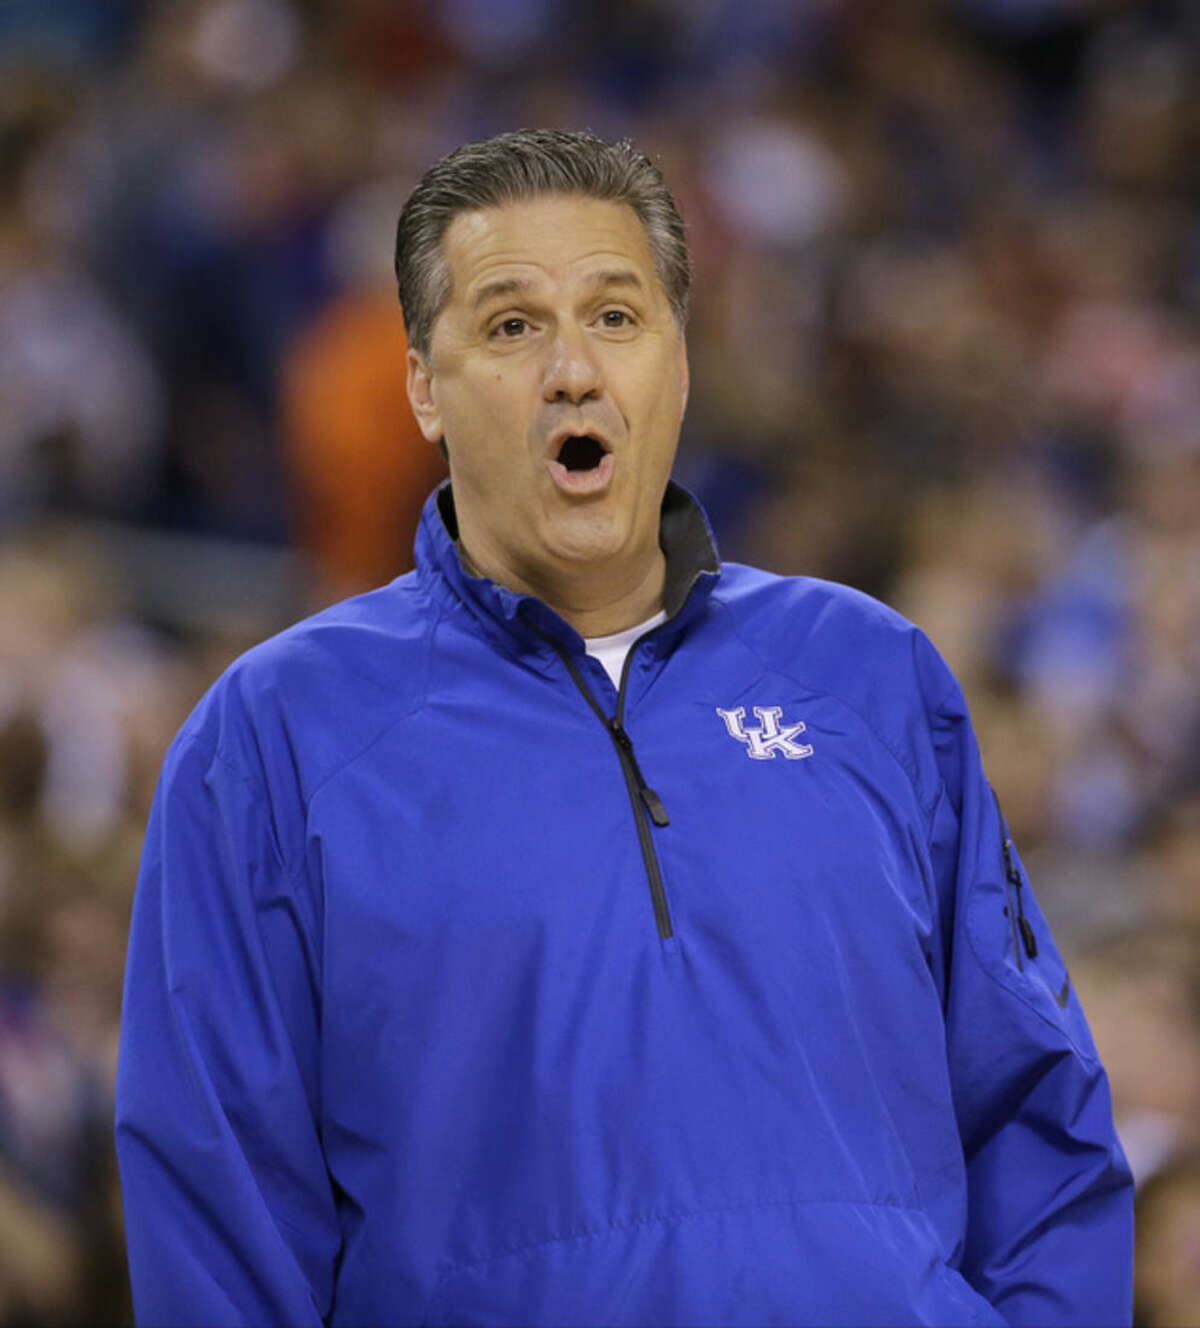 Kentucky head coach John Calipari reacts during a practice session for the NCAA Final Four tournament college basketball semifinal game Friday, April 3, 2015, in Indianapolis. Kentucky plays Wisconsin on Saturday. (AP Photo/David J. Phillip)